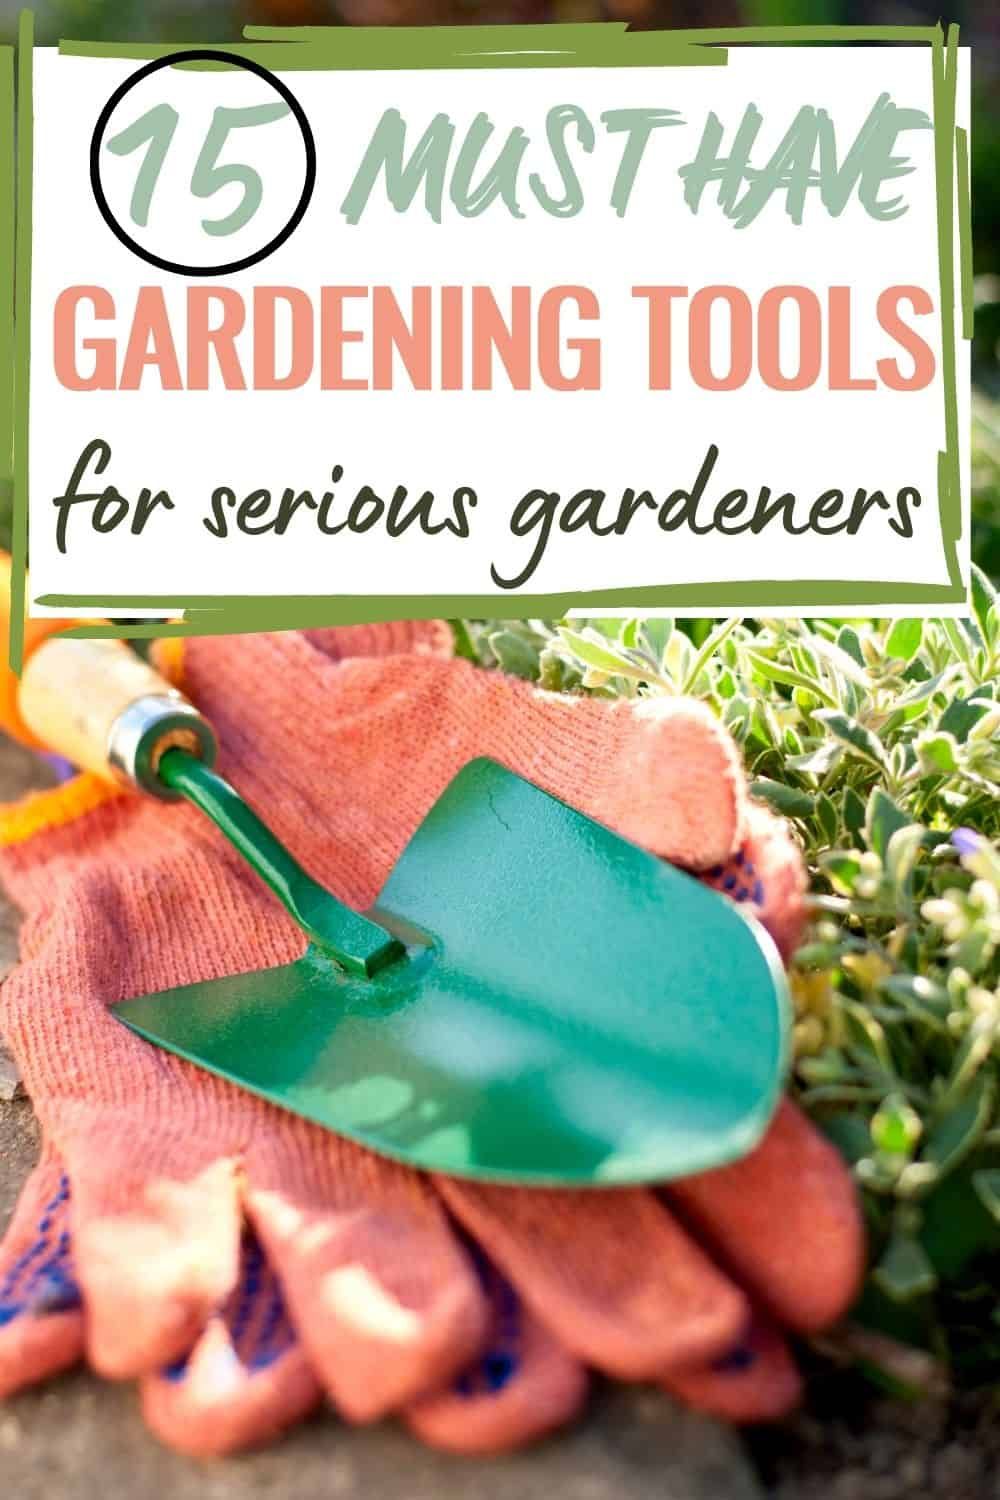 15 must-have best gardening tools for serious gardeners